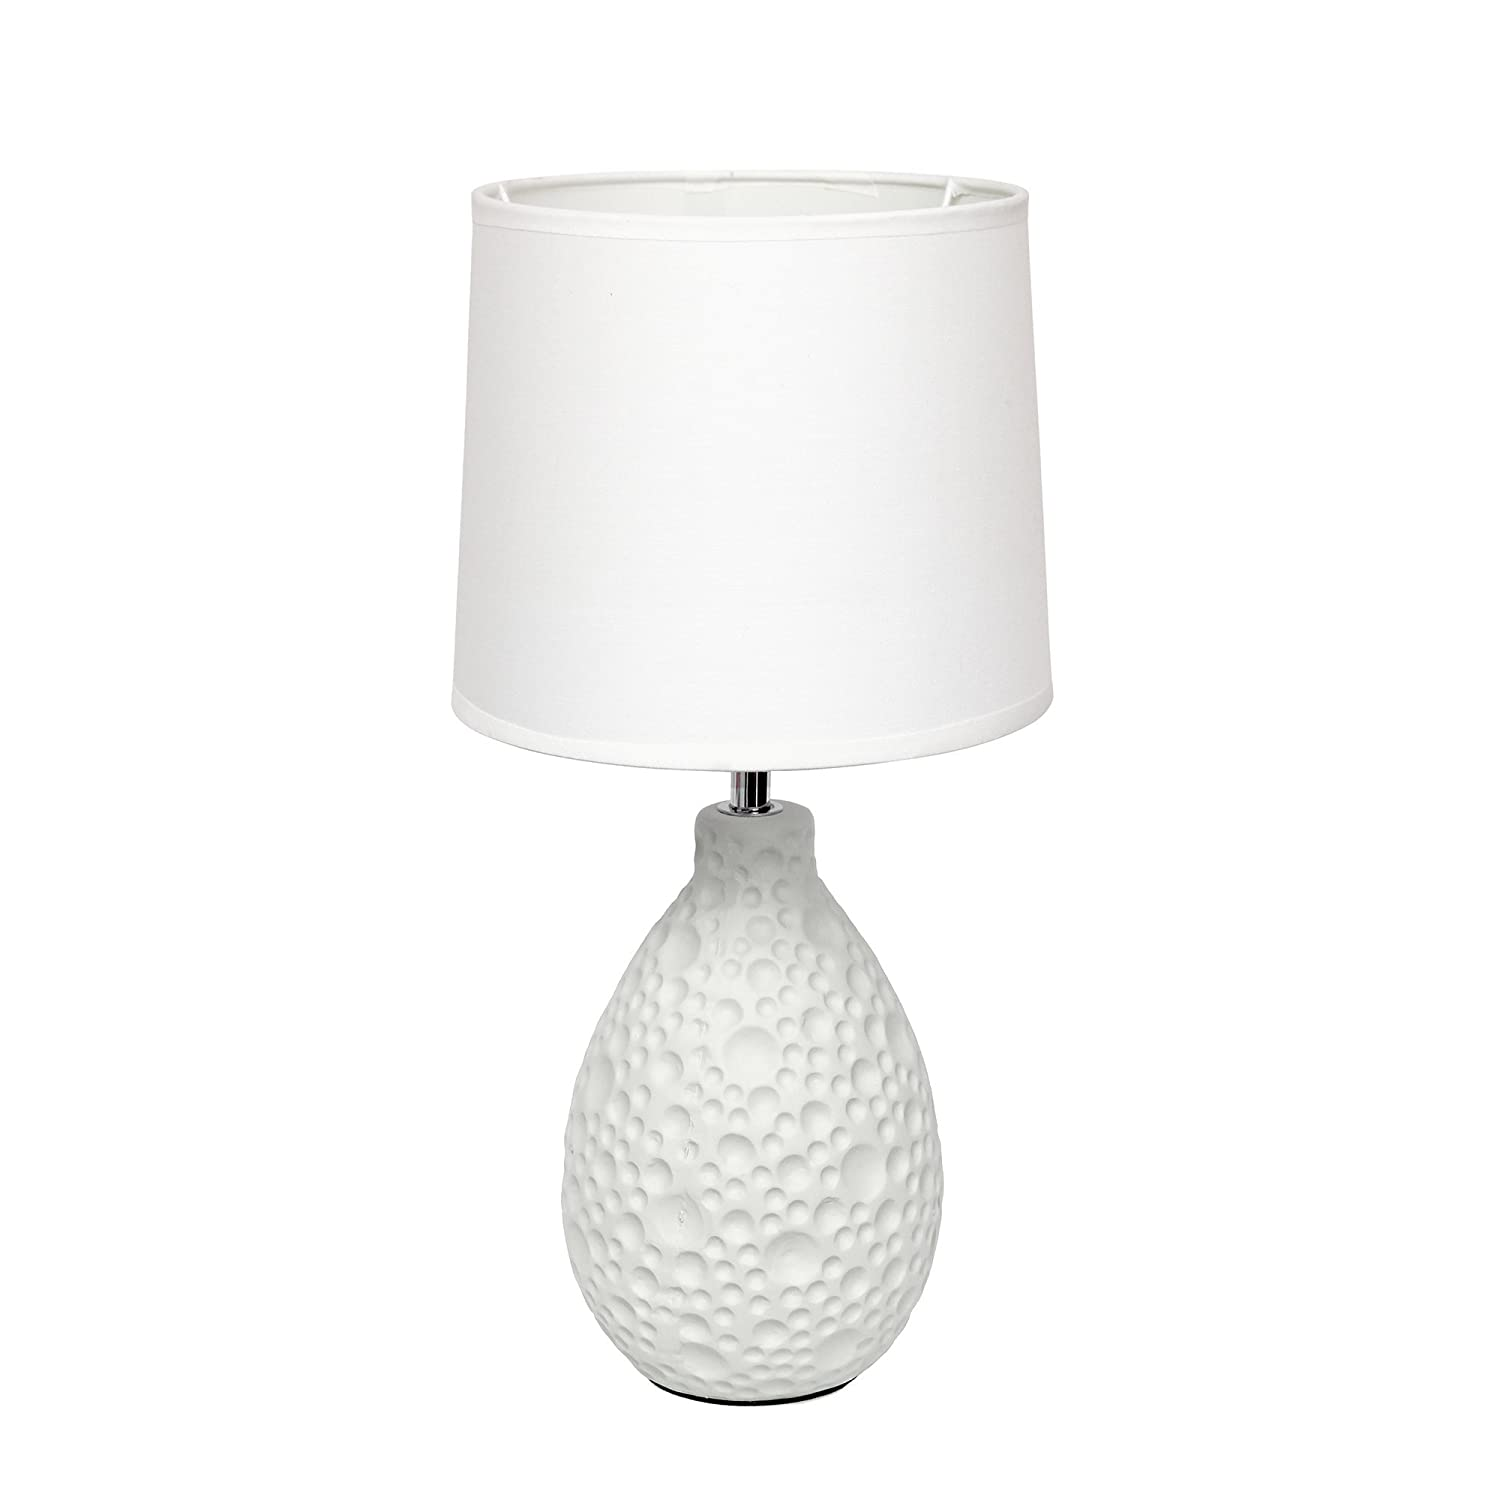 "Simple Designs Home LT2003-WHT Texturized Stucco Ceramic Oval Table Lamp, 7.09"" x 7.09"" x 14.17"", White"